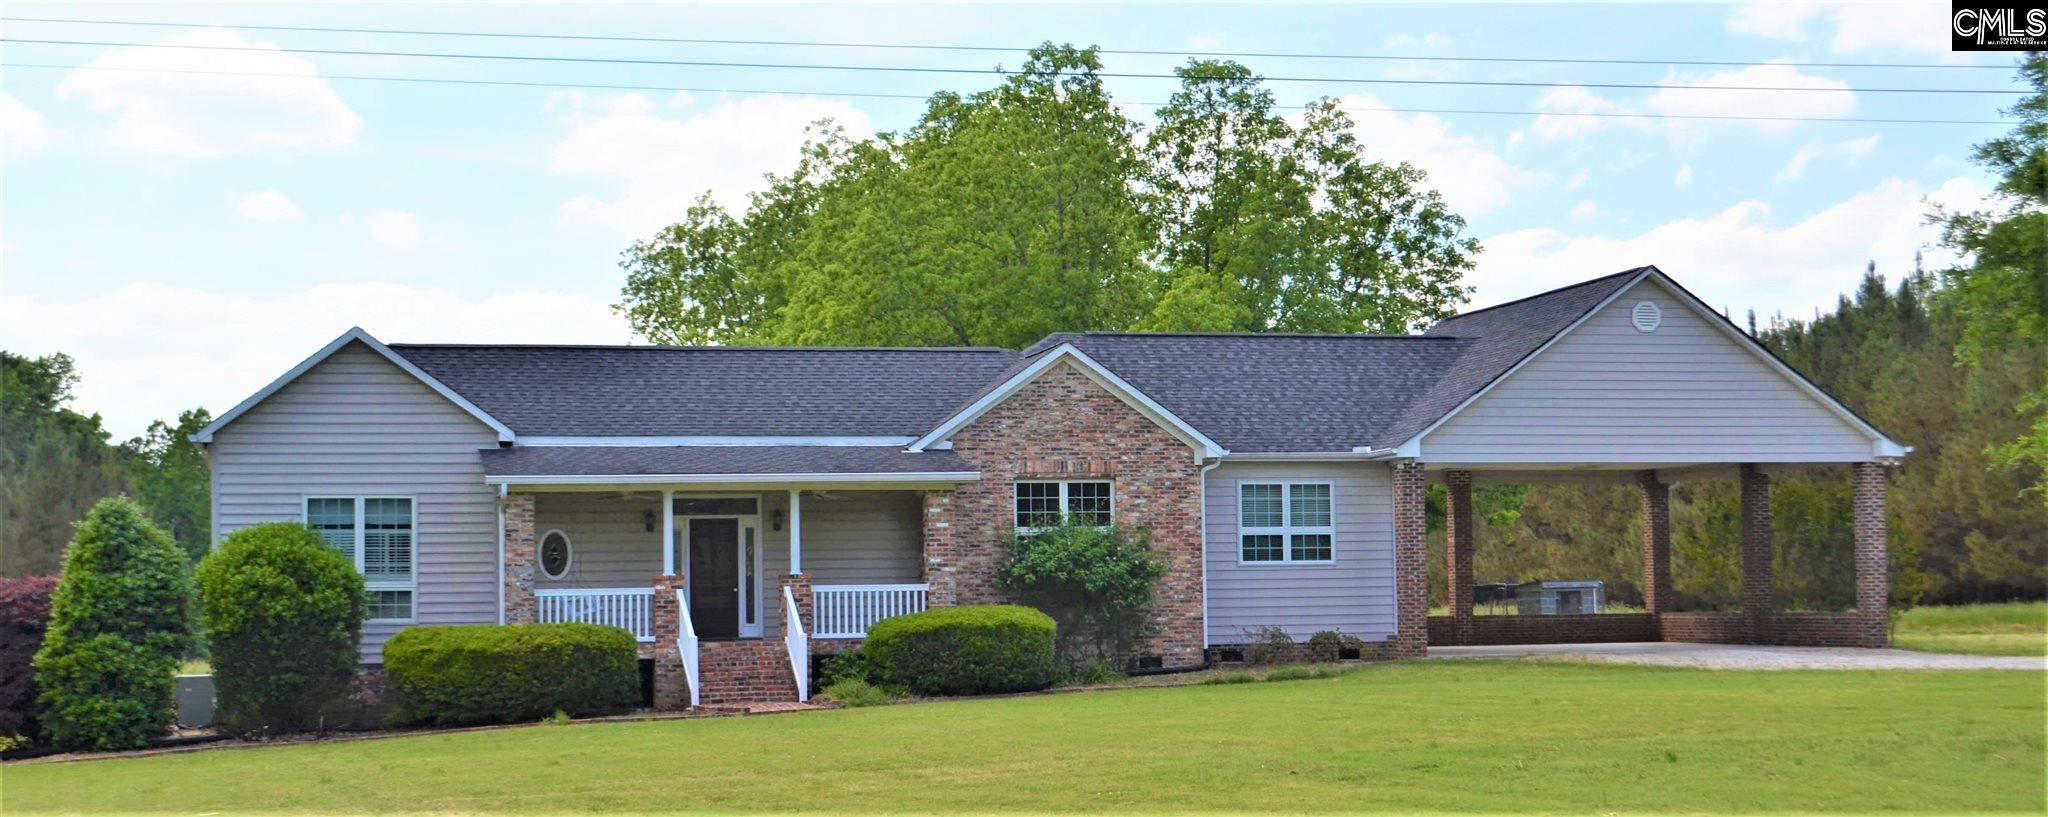 2141 Priceville Gilbert, SC 29054